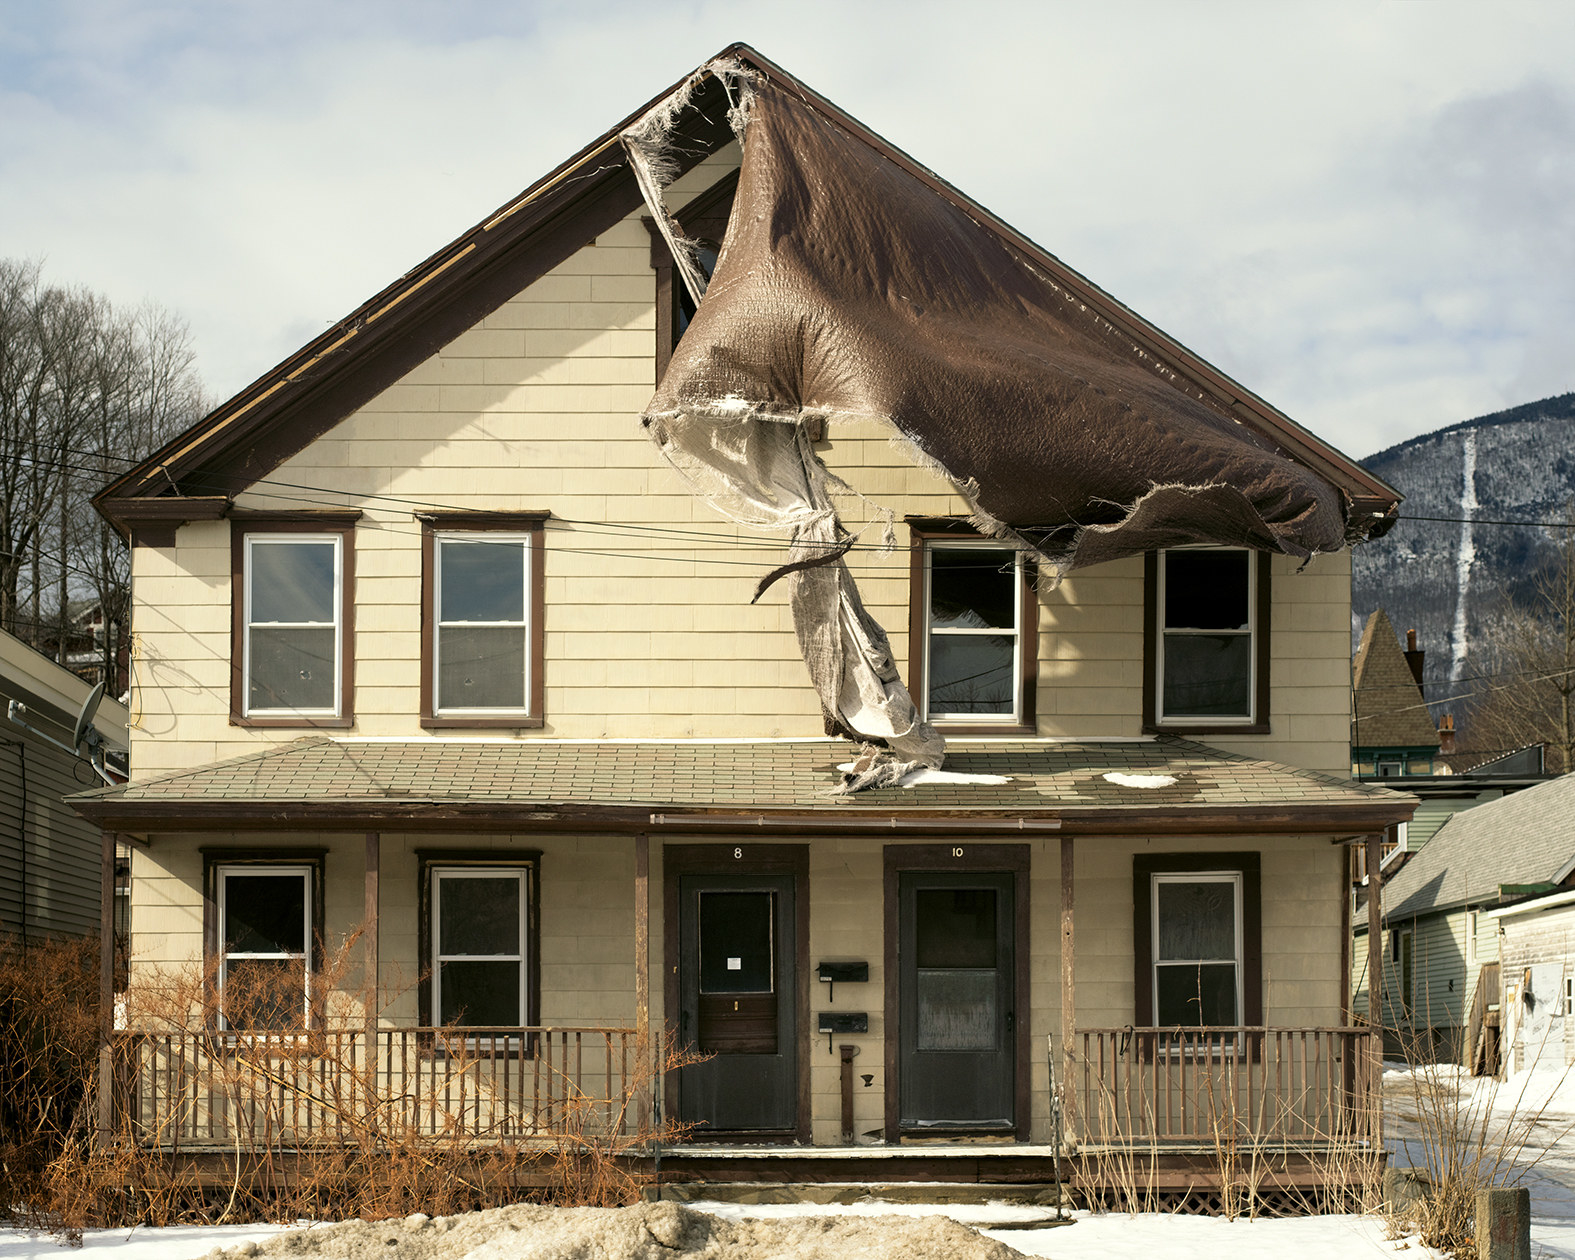 A half-burned house